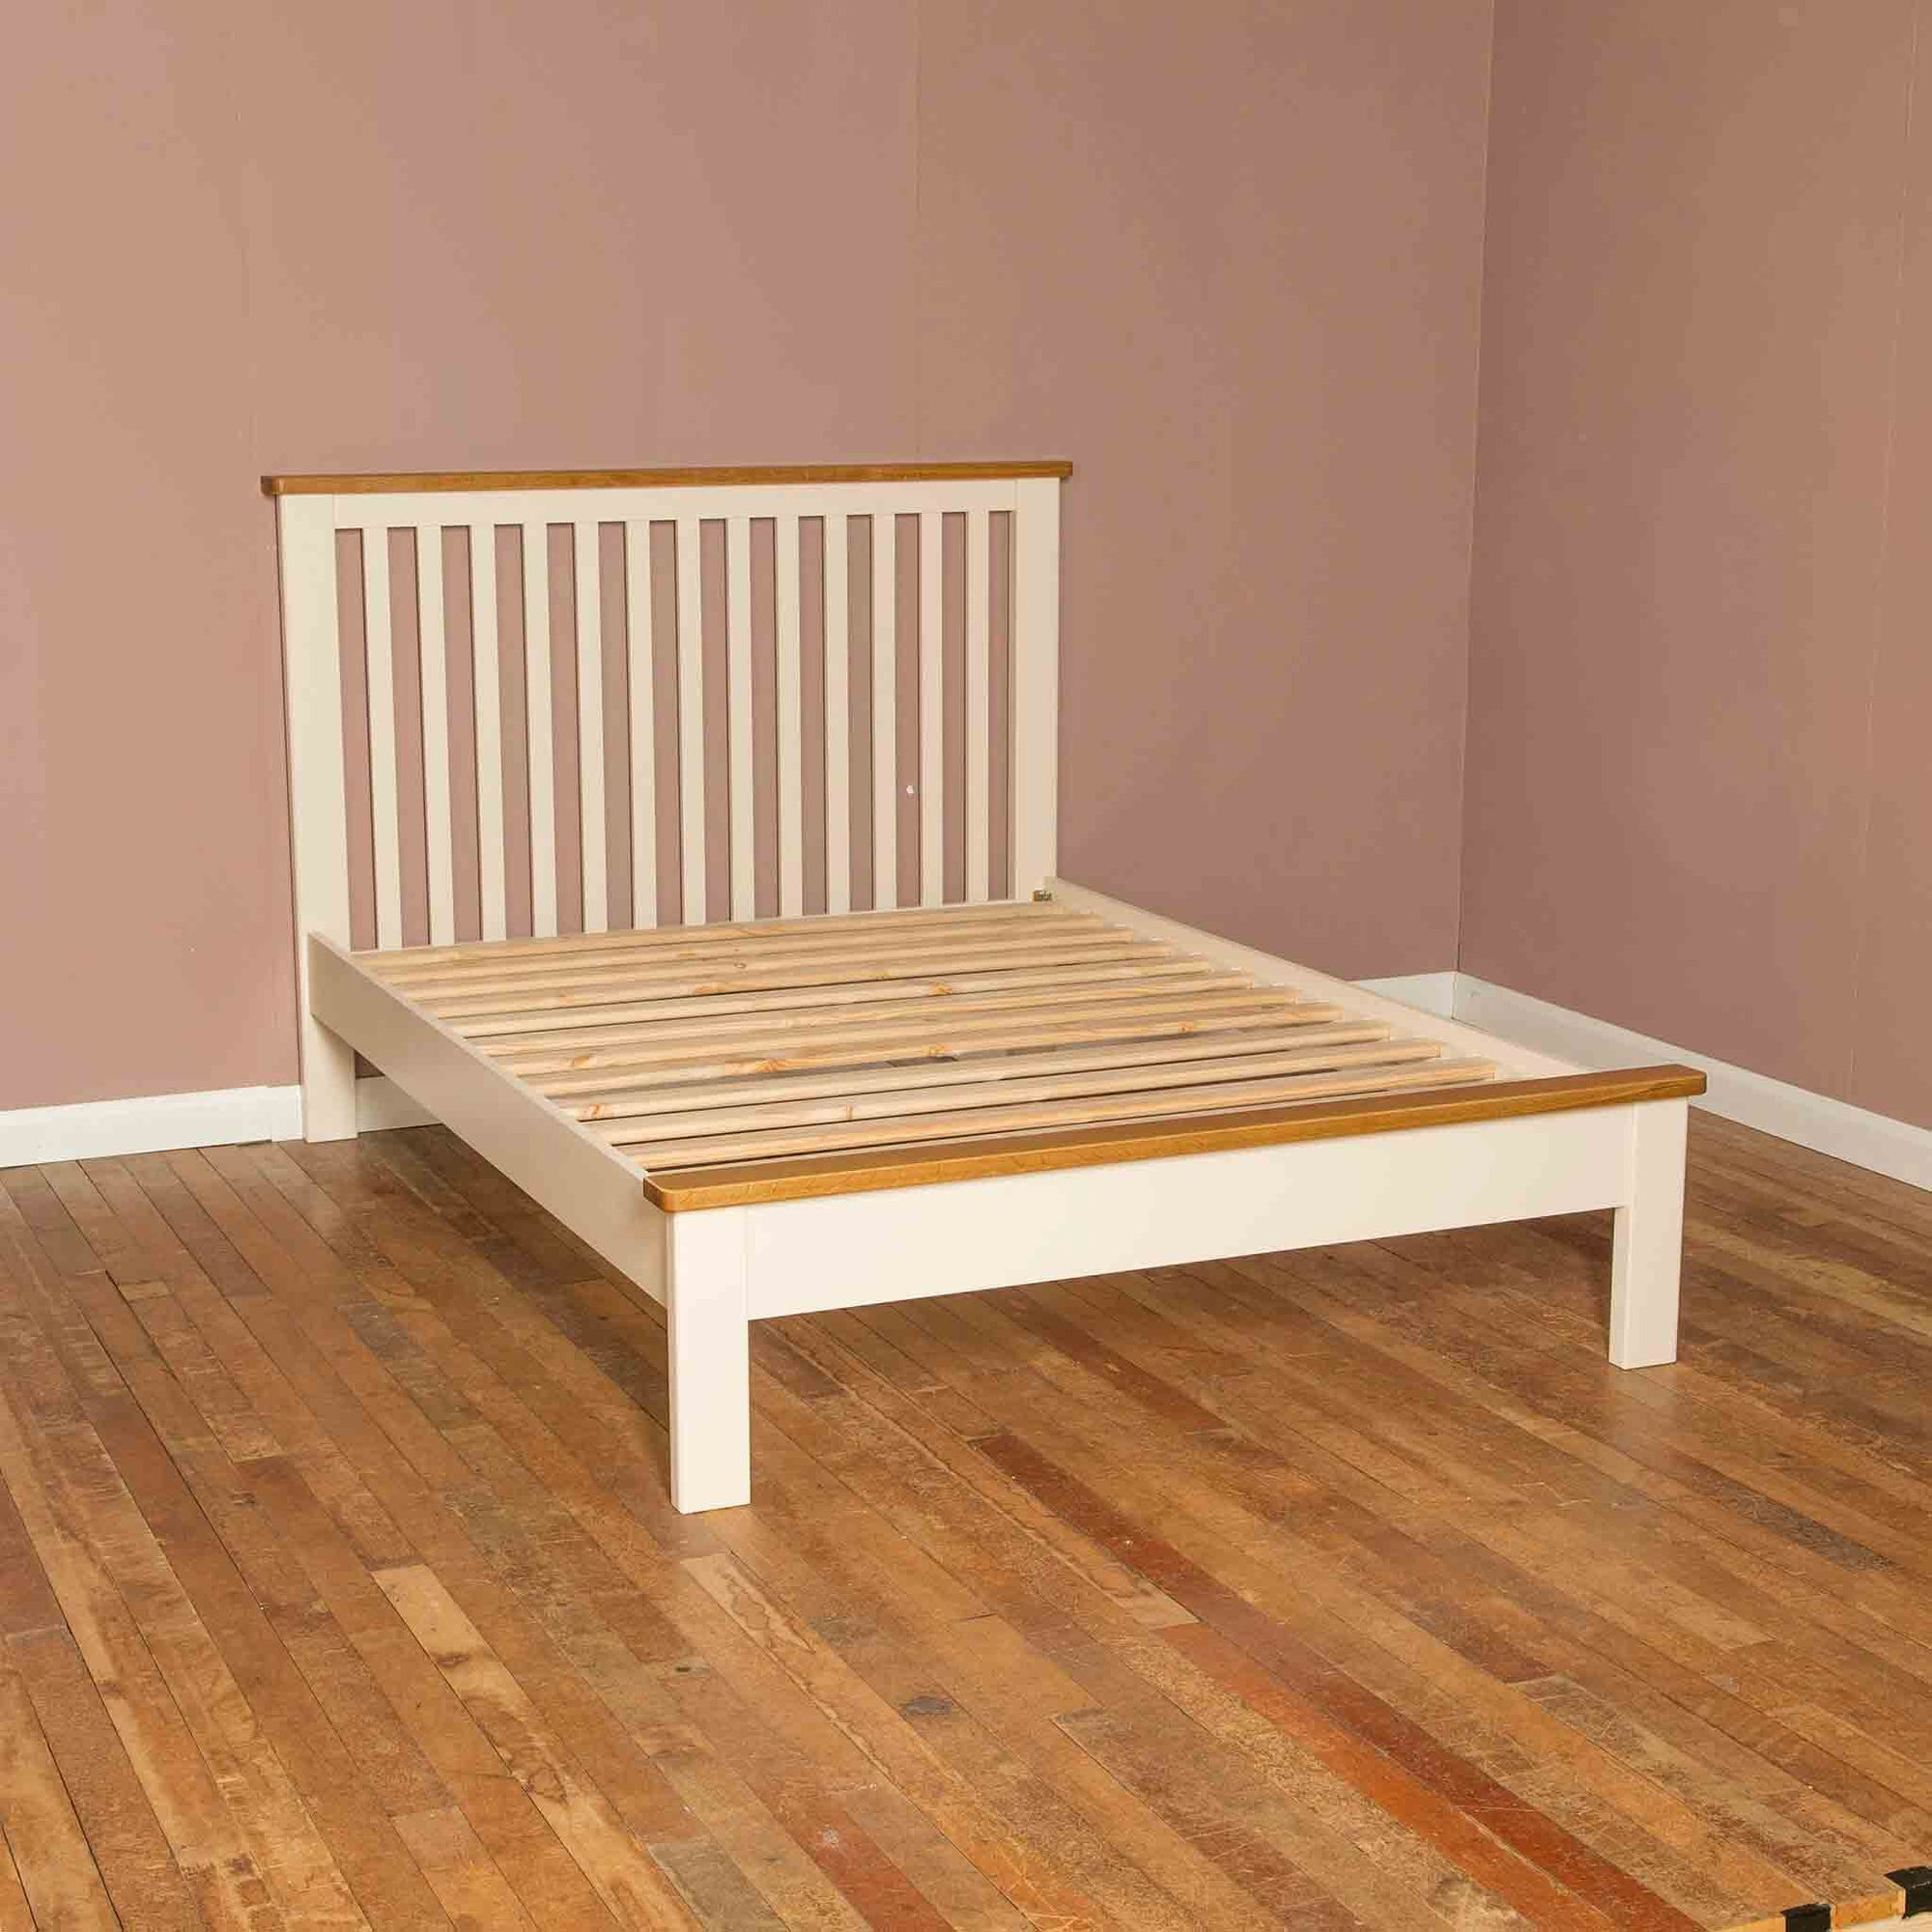 Side view of the The Padstow Cream 5 ft Solid Wood King Size Bed Frame with Oak